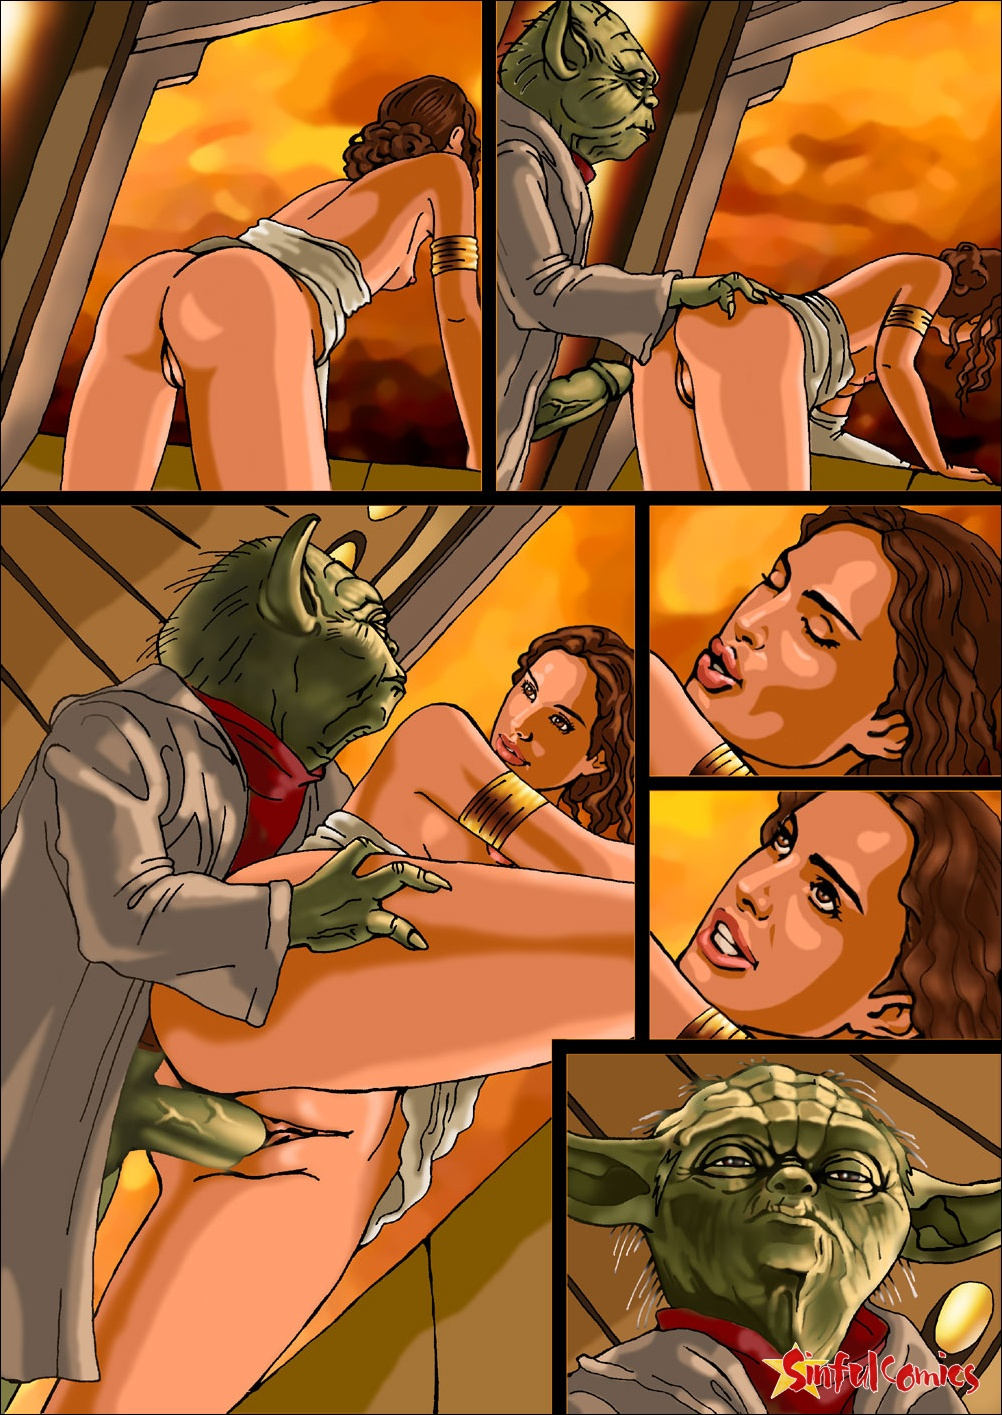 Star wars sex stories hentai picture